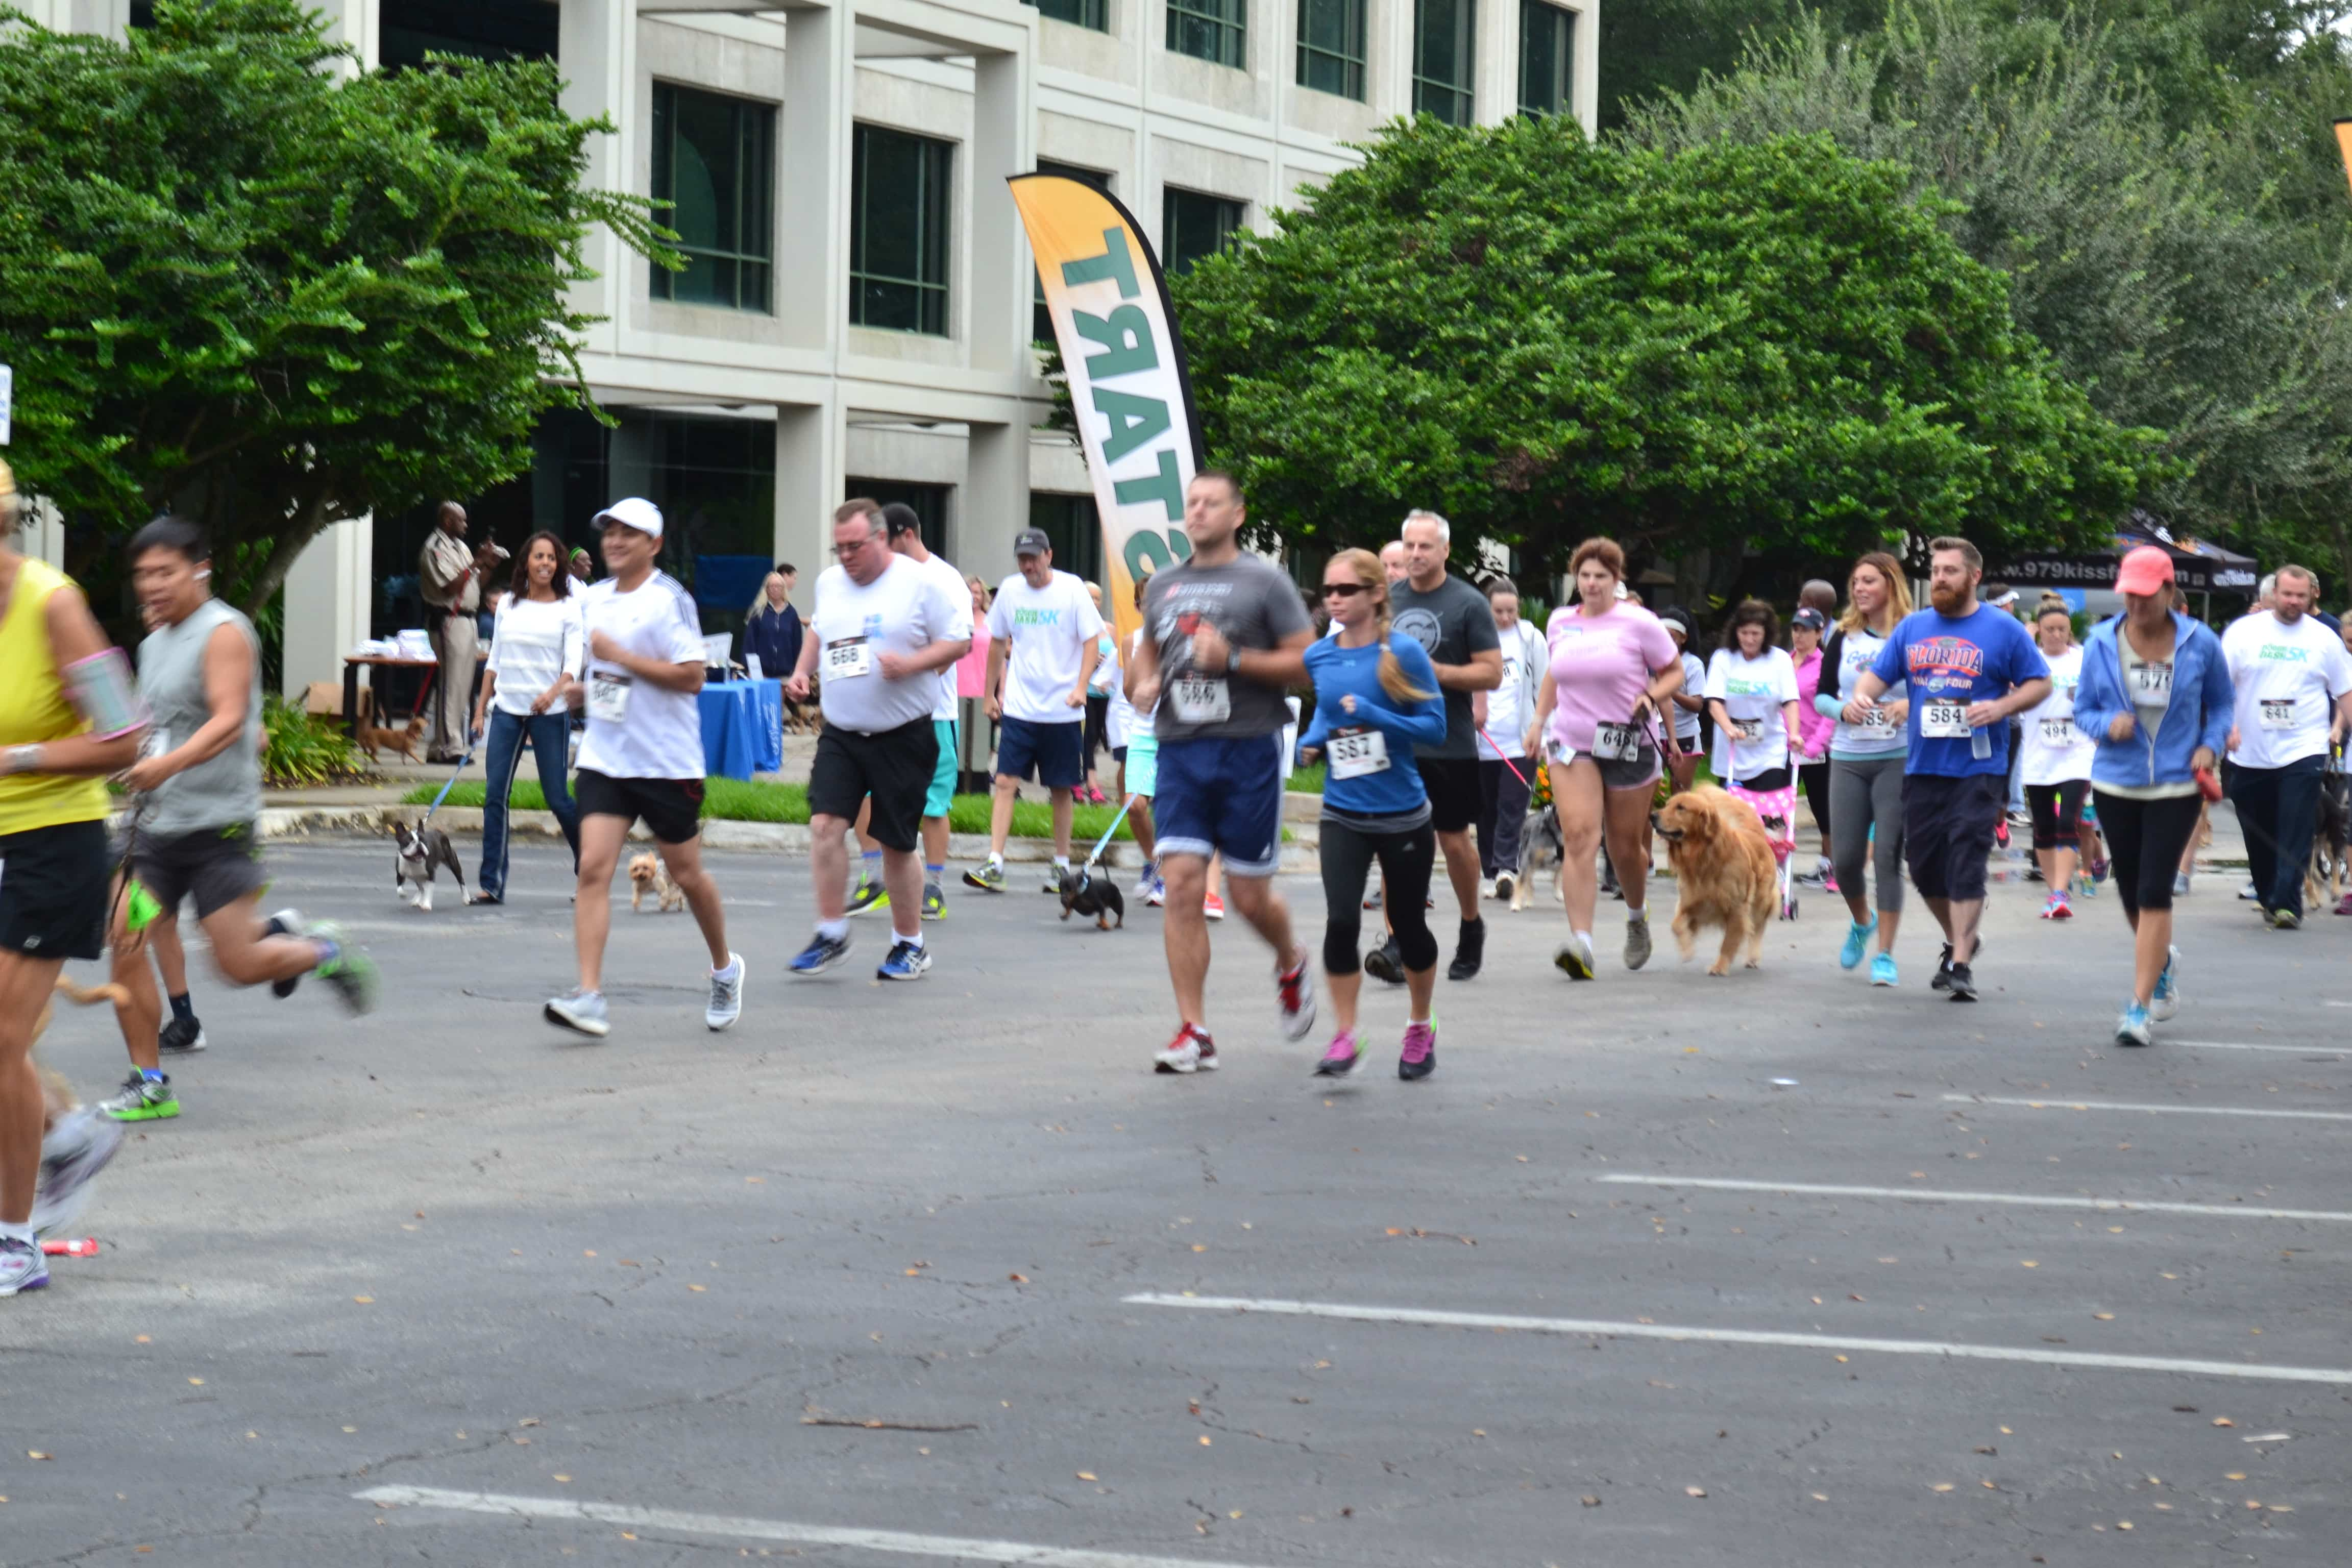 Jacksonville Holds Fourth Annual Doggie Dash 5k